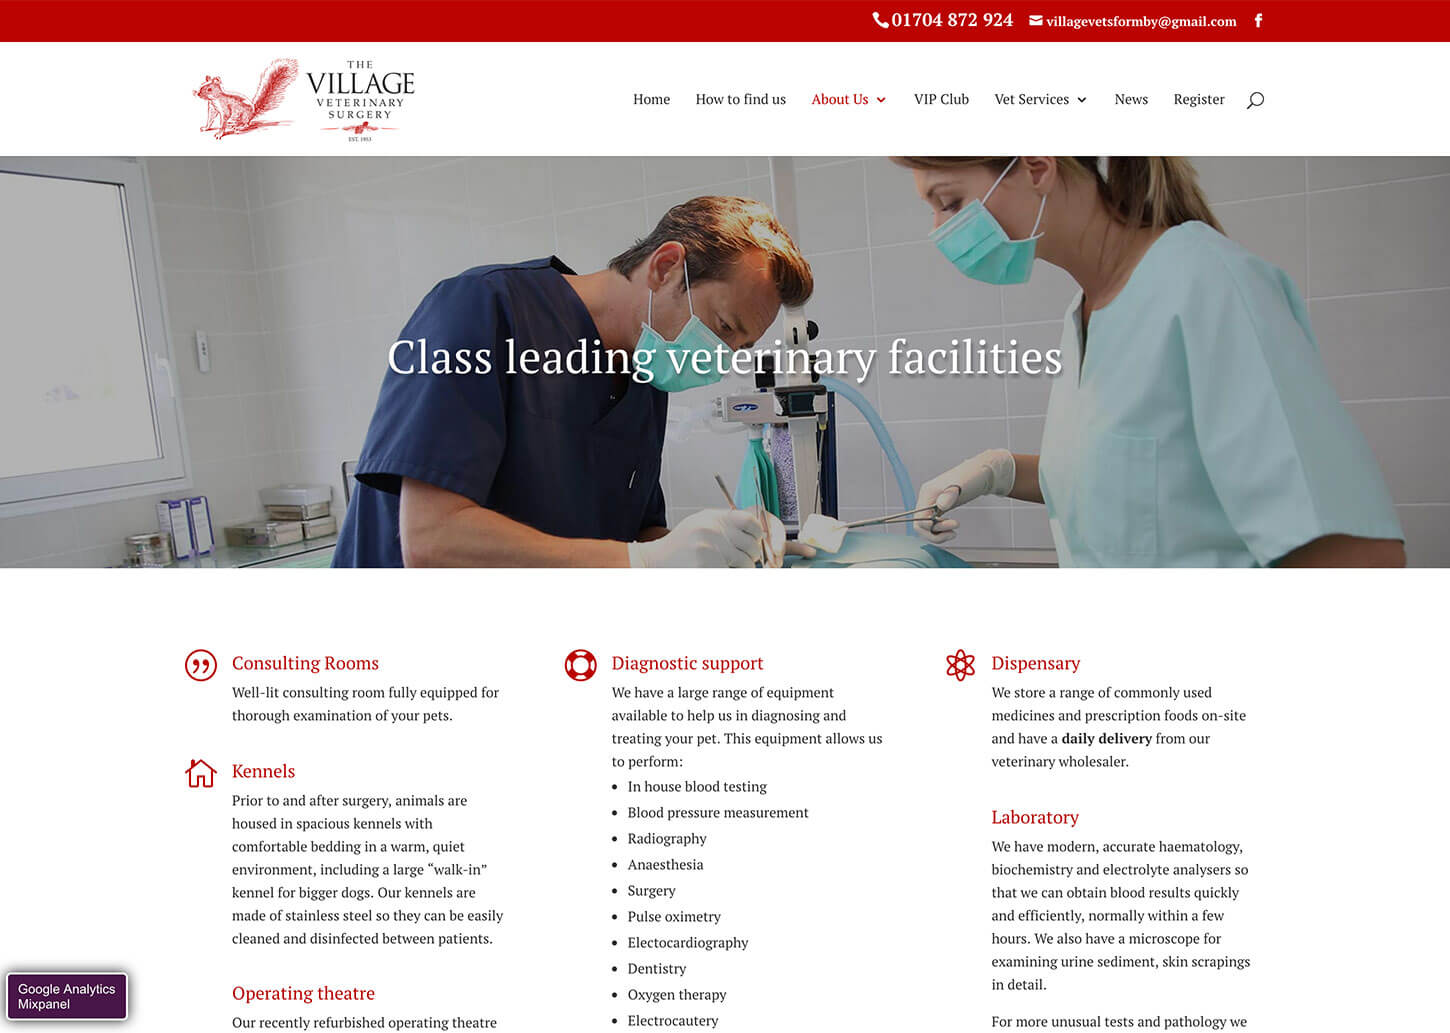 Village Vets website design: Veterinary practice facilities page